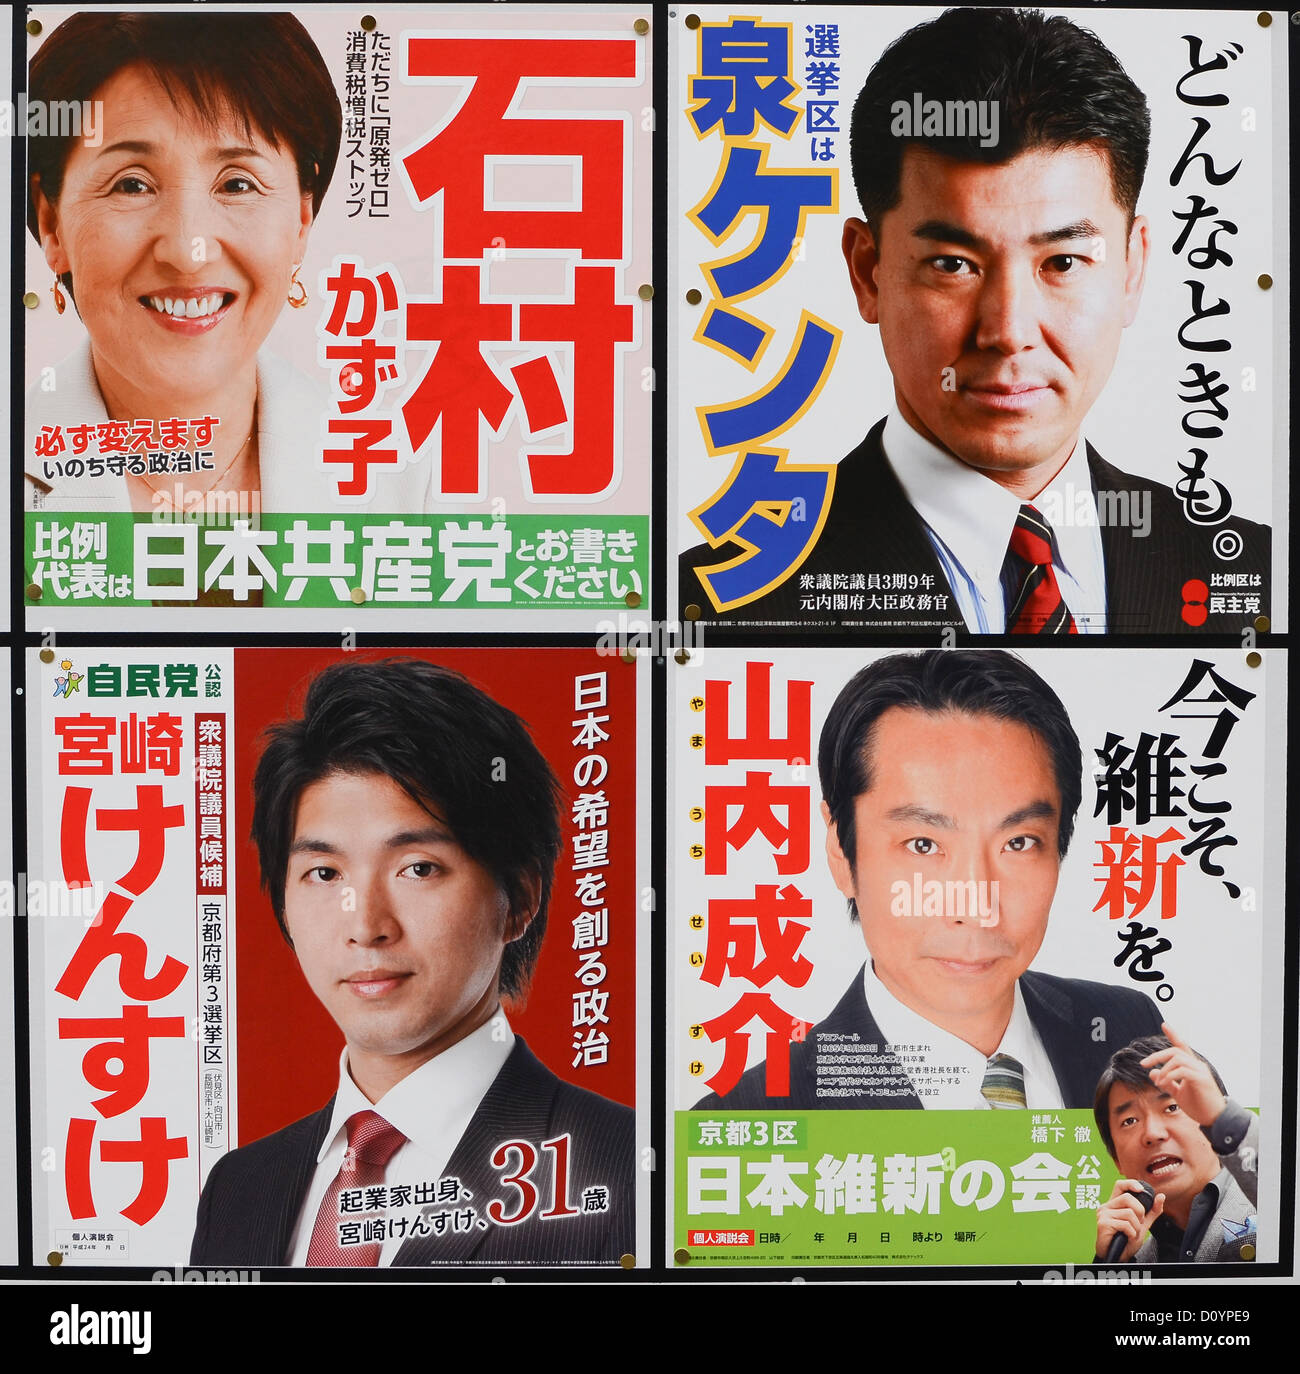 Kyoto, Japan. 4th December 2012. Posters in Kyoto show some of the candidates hoping to win seats in Japan's parliament Stock Photo